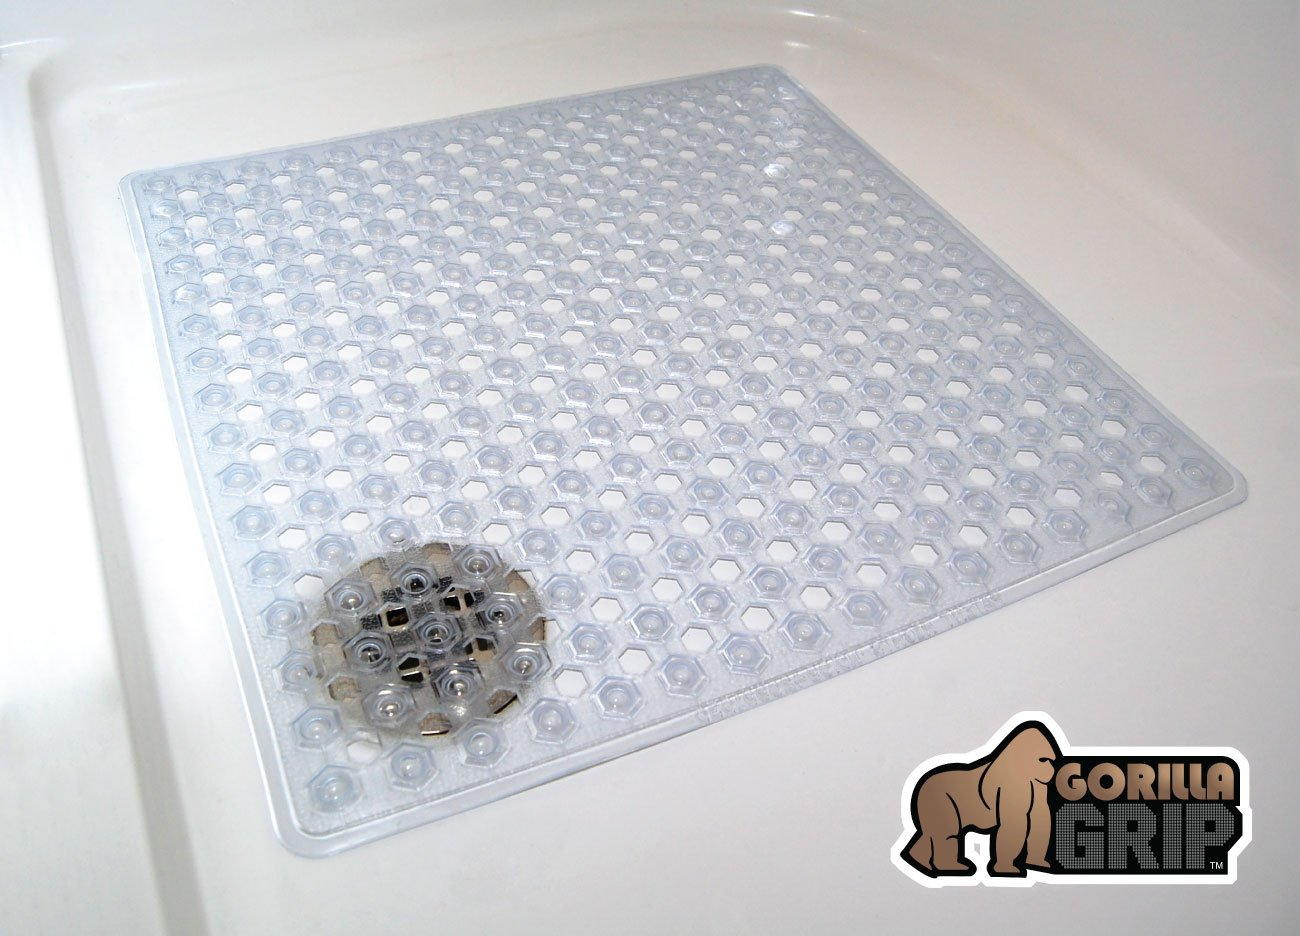 "The Original GORILLA GRIP (TM) Non-Slip Shower Mat Featuring Powerful Gripping Technology, Highest Quality Material, Fits Any Size Shower (Clear: Square 21"" x 21"")"